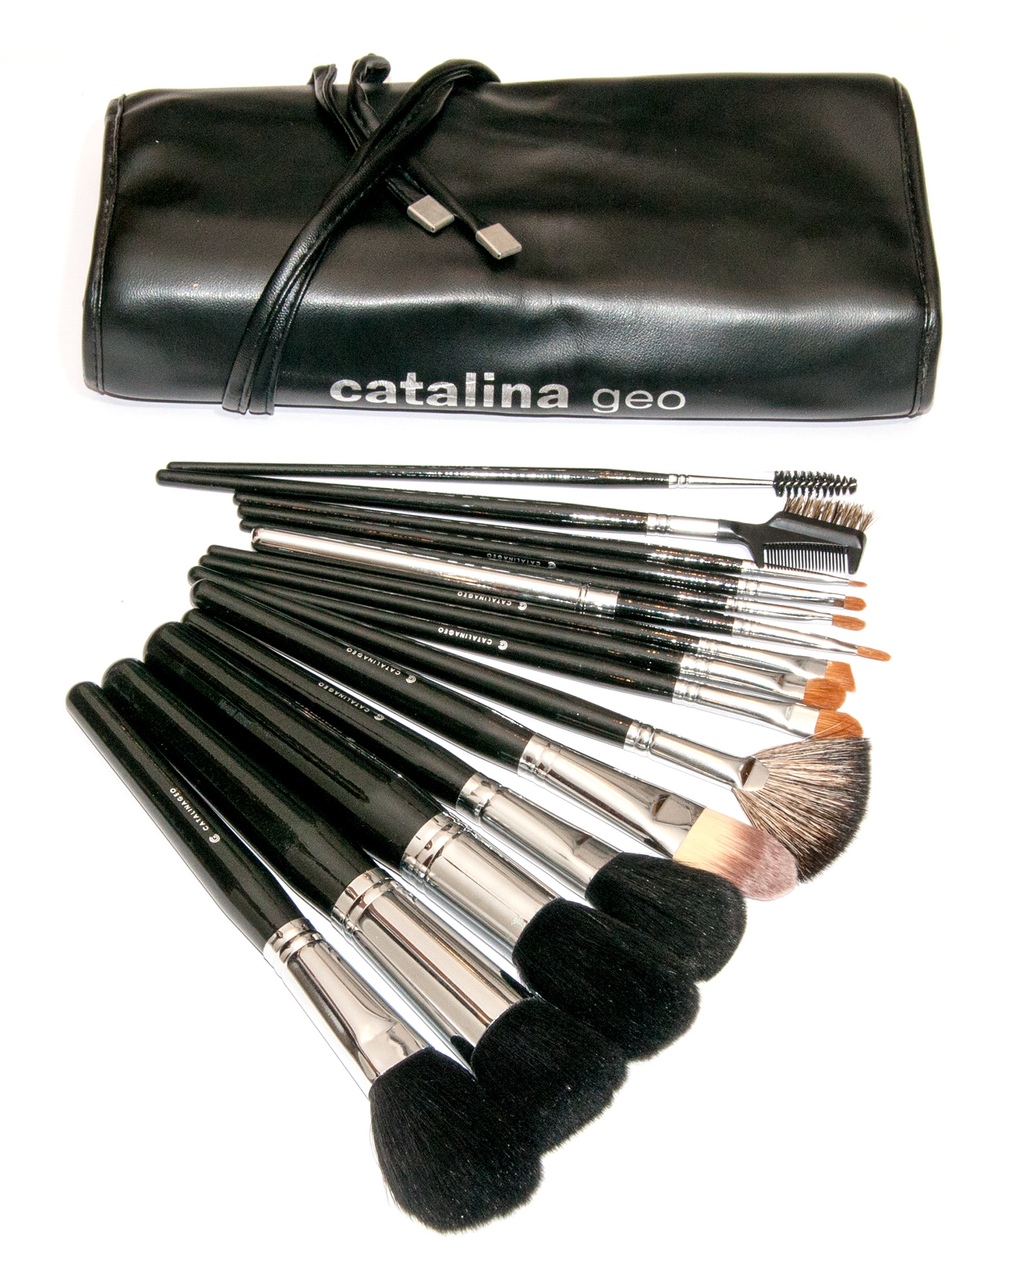 catalinageo make up brushes Catalina Geo Professional Brush Scroll Set